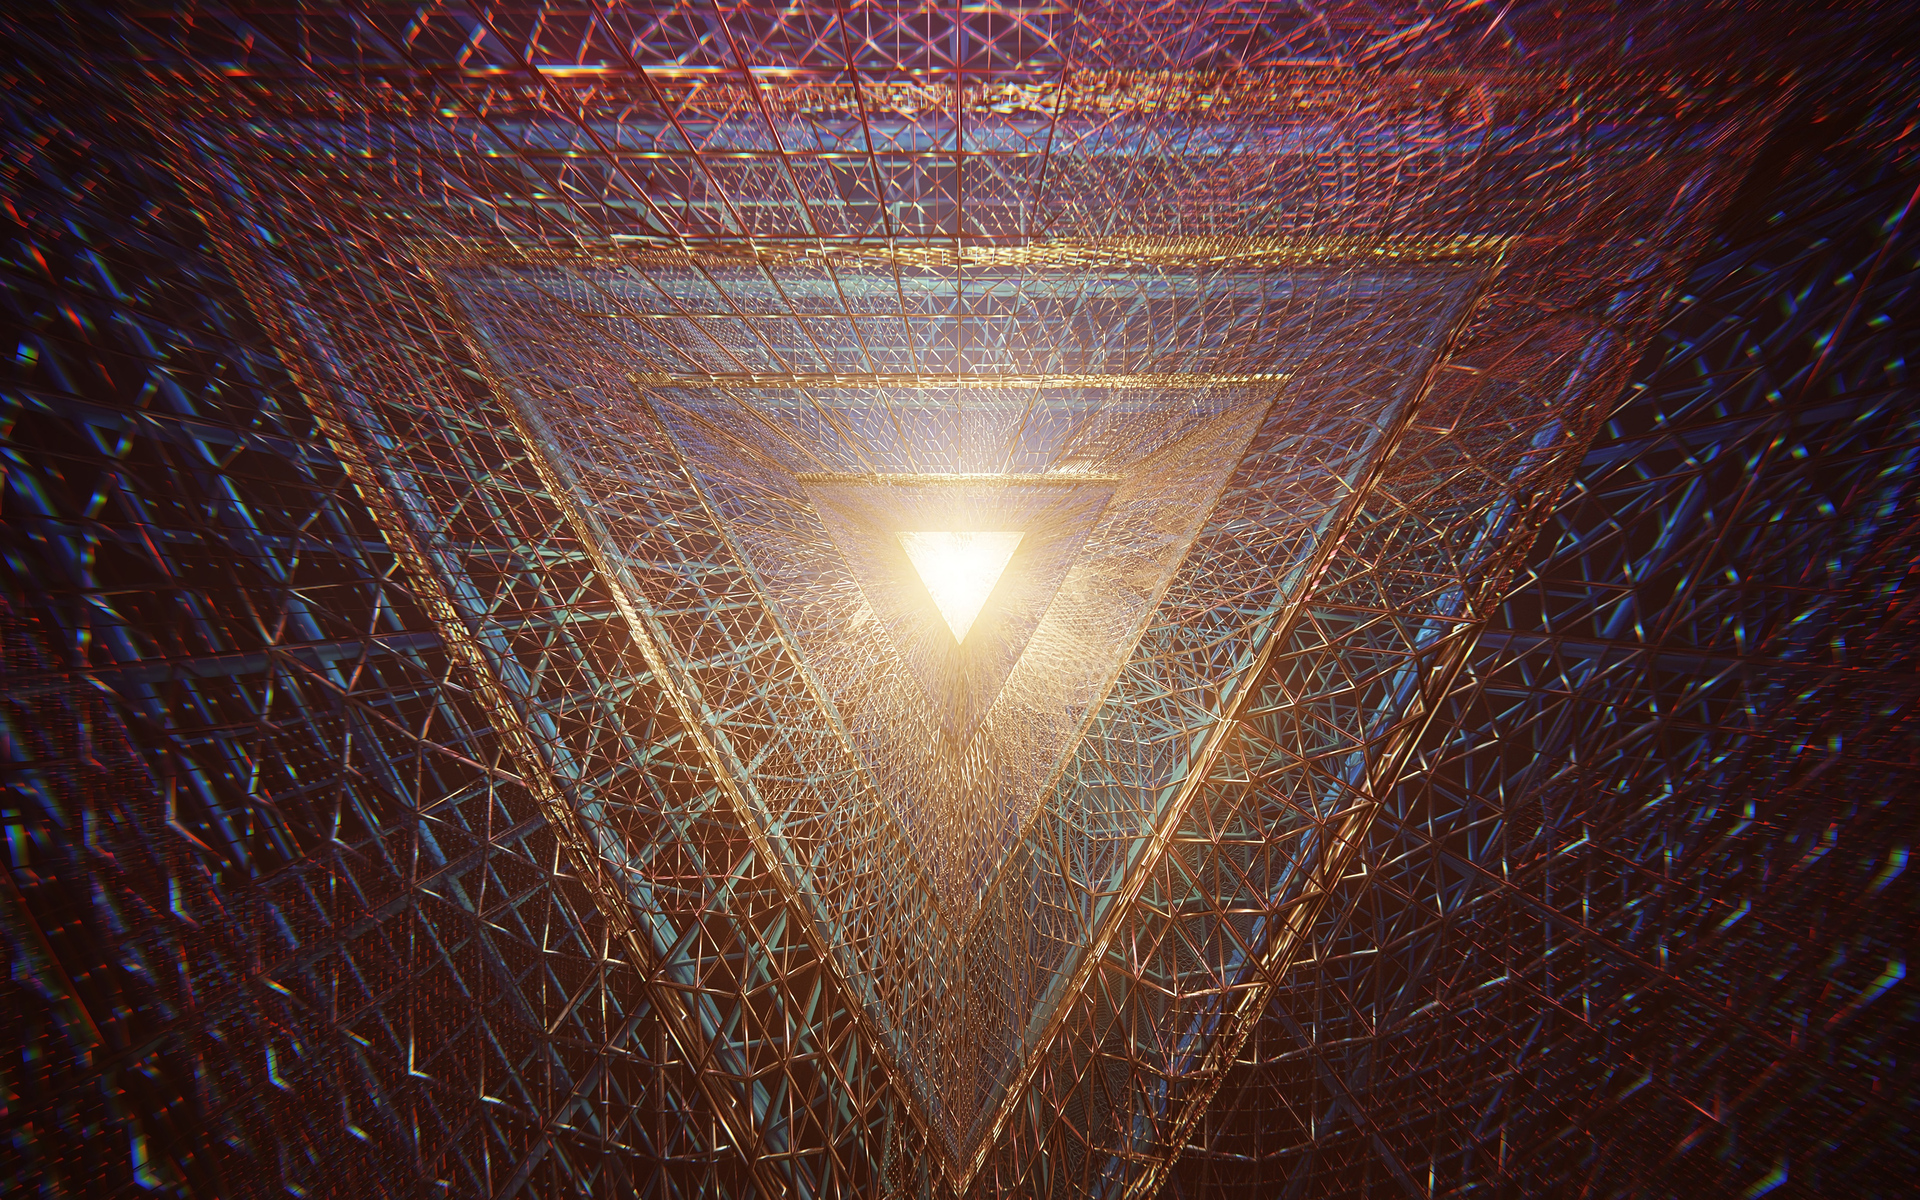 triangle-geometry-abstract-4k-xc.jpg